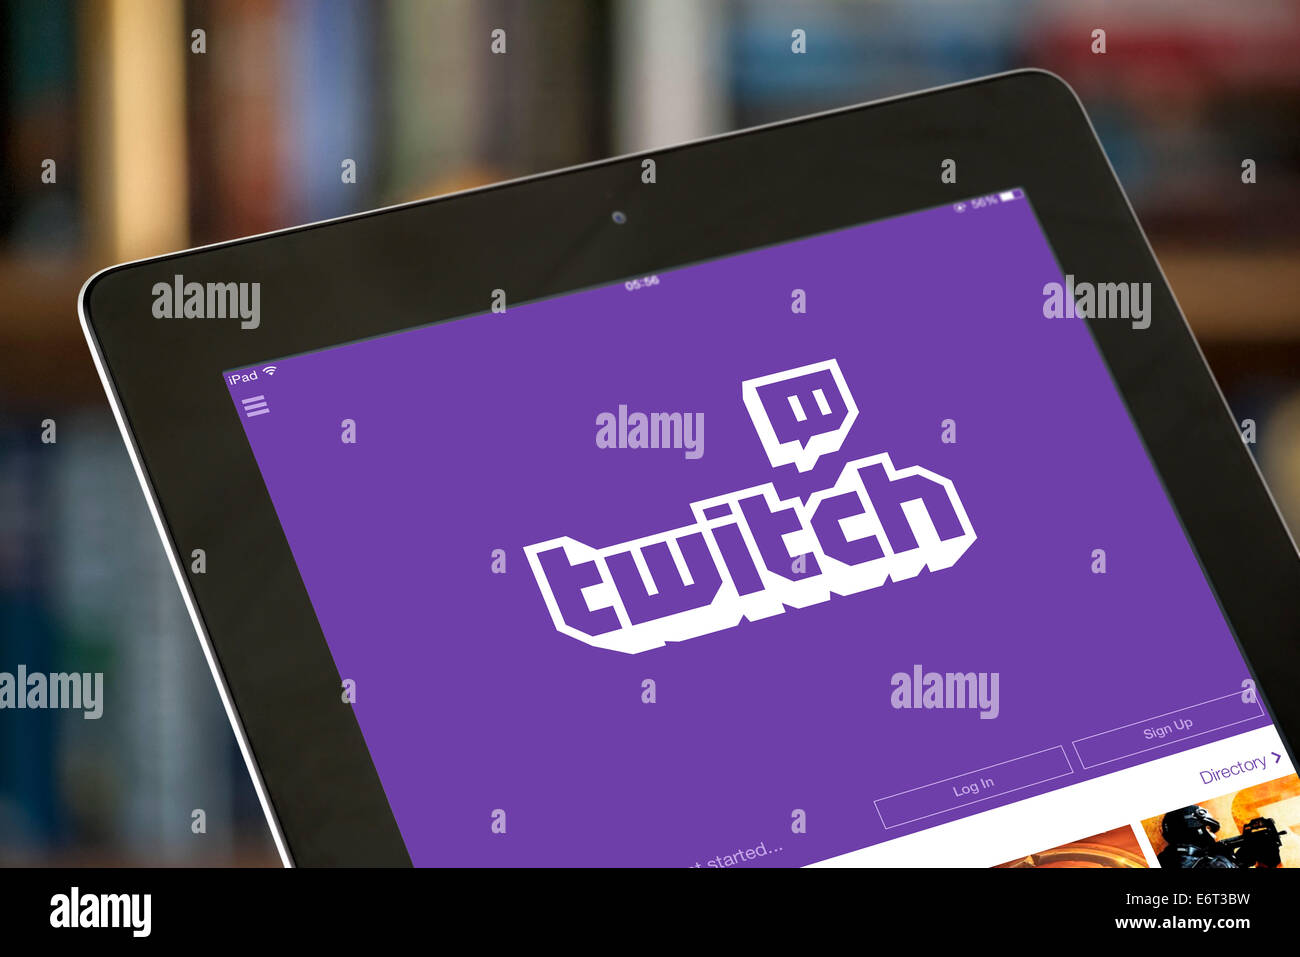 Los juegos de video streaming app Twitch, vistos en un Apple ipad Imagen De Stock